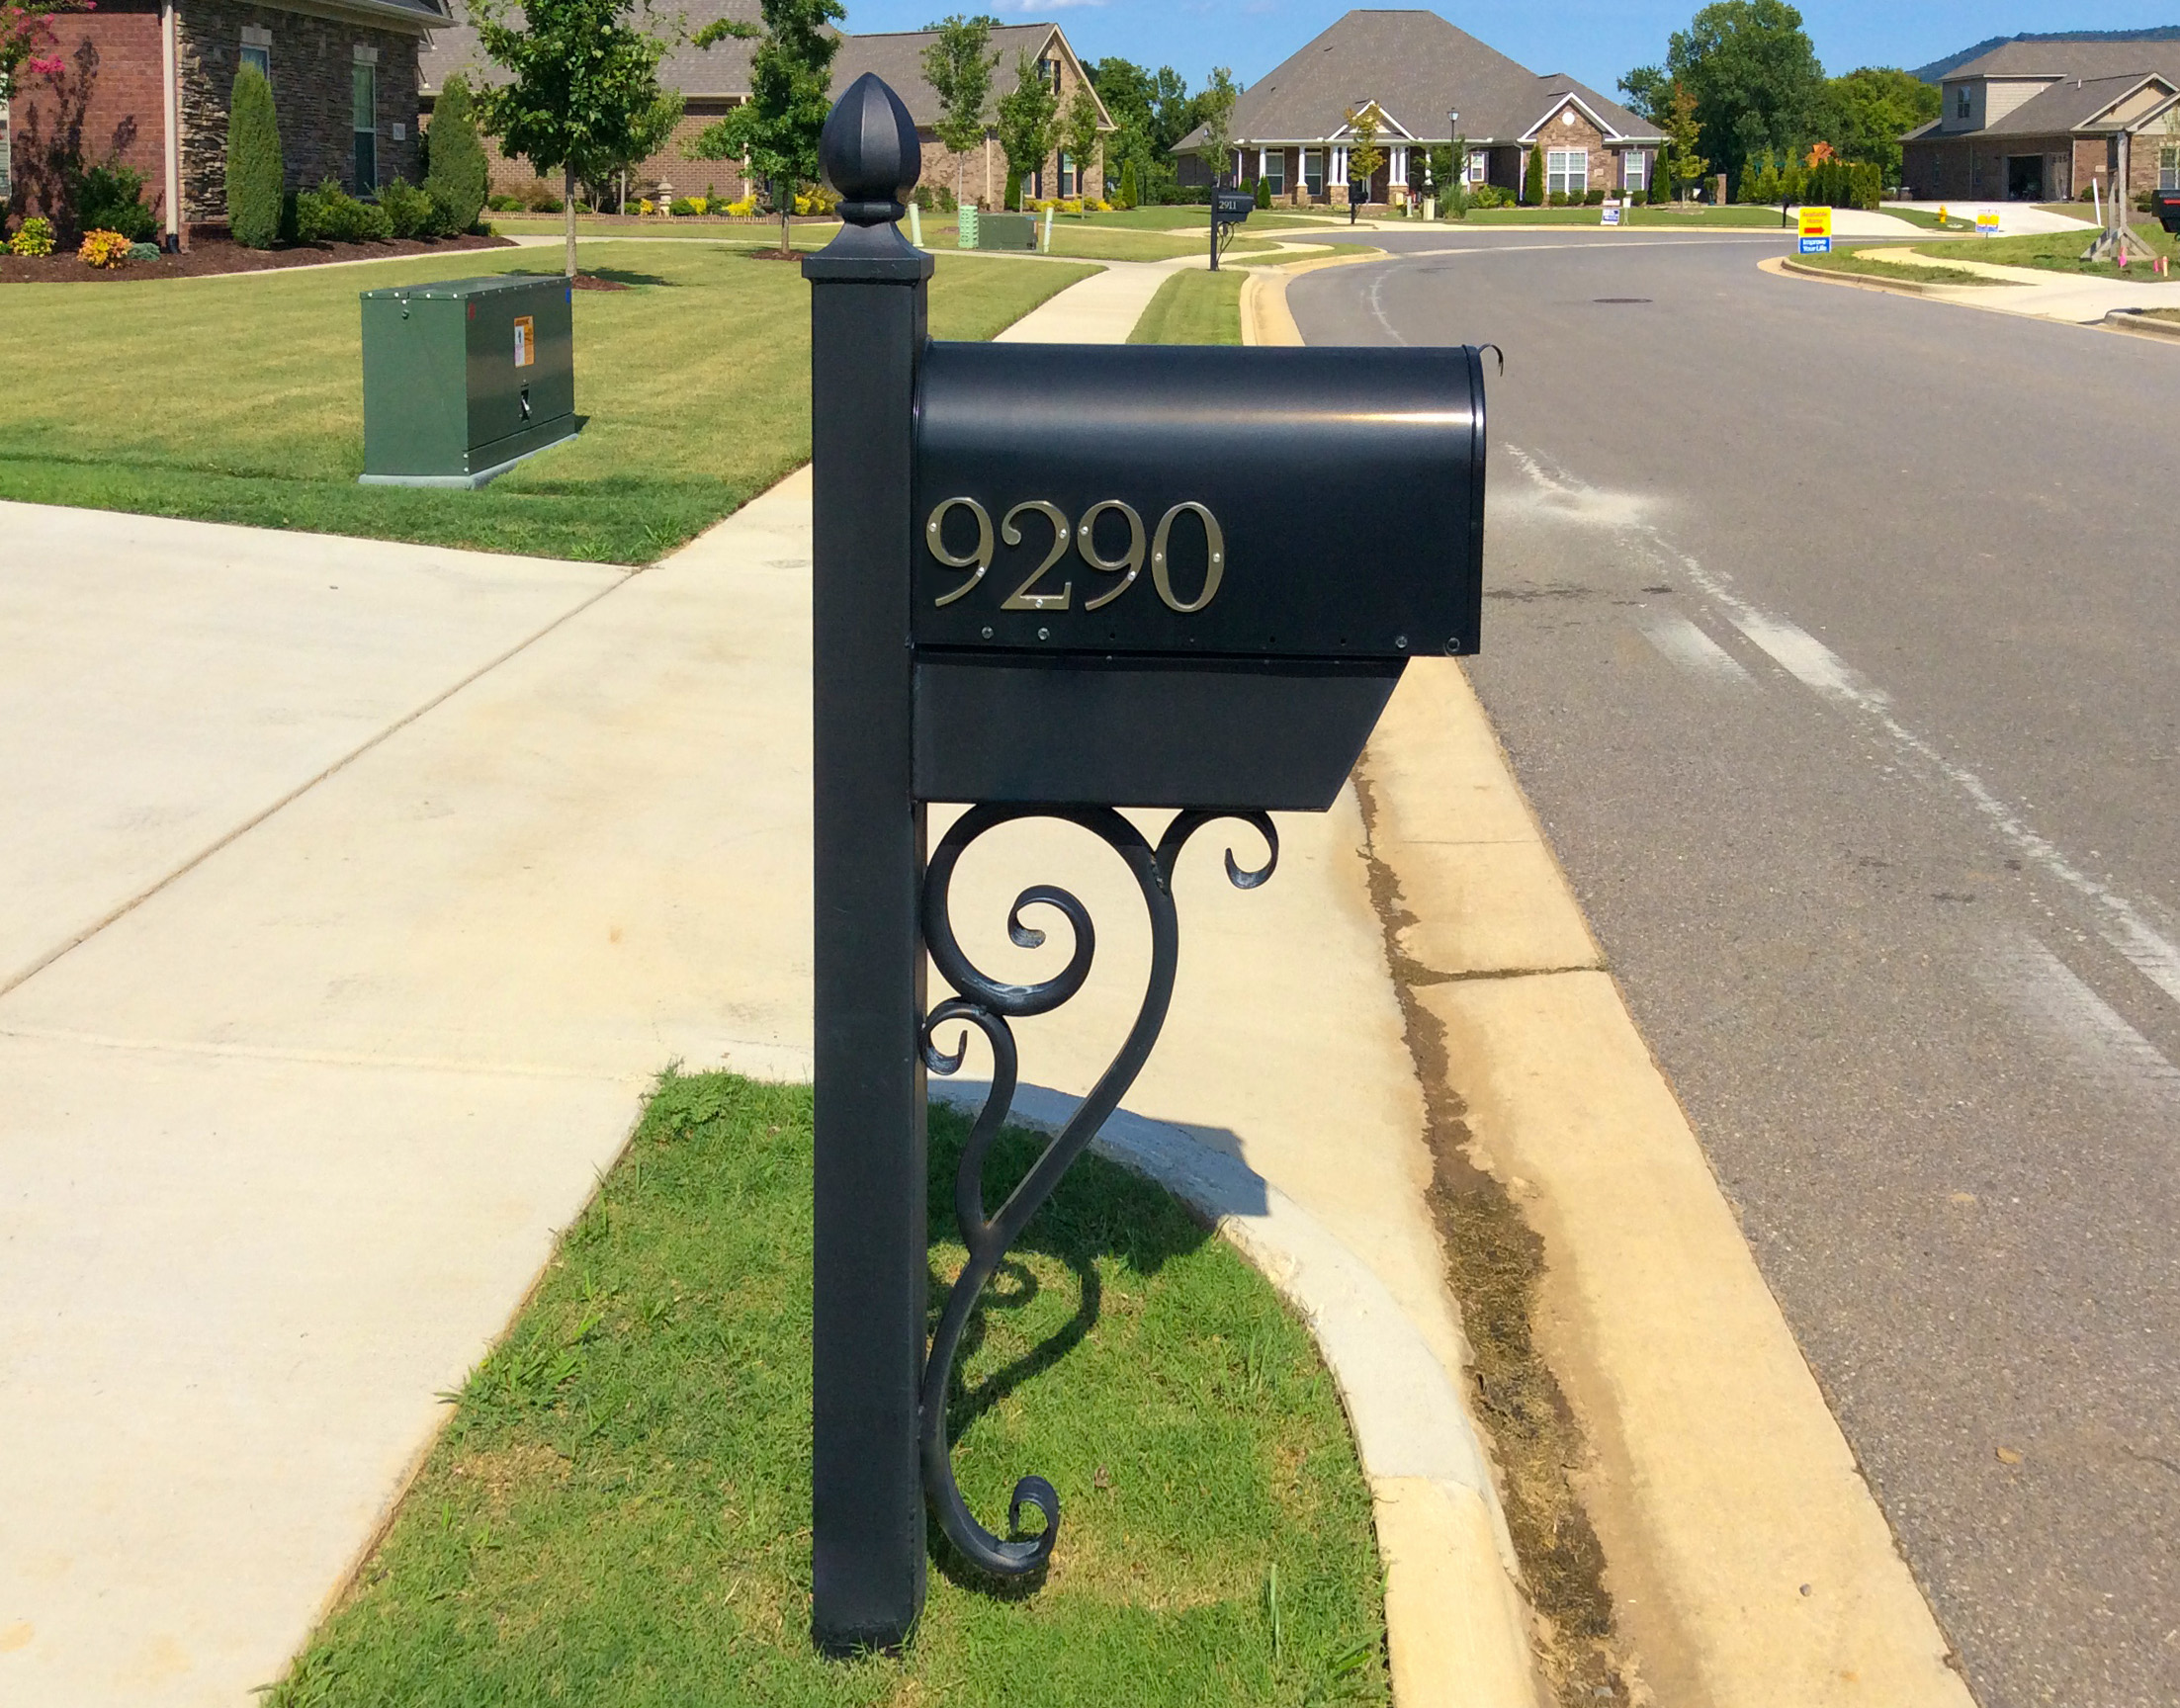 Looking For A Unique Design To Your Front Lawn That Will Make Neighbors Turn Their Heads We Provide Custom Mailbox And Light Posts In Variety Of